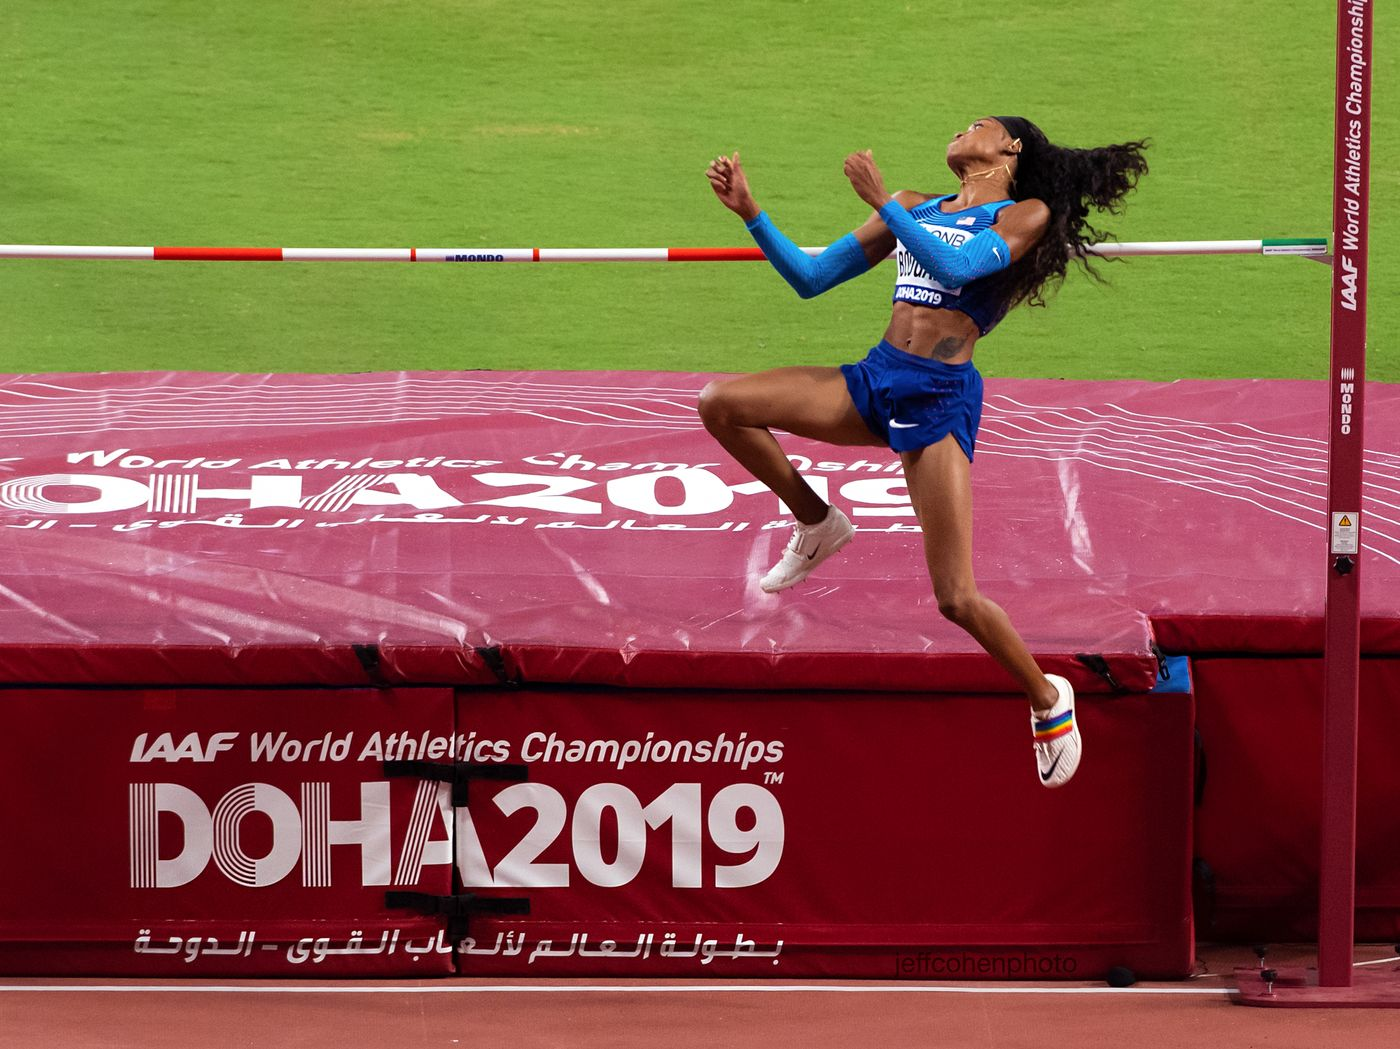 2019-DOHA-WC-day-6-874--bougard-hept-hj--jeff-cohen-photo--web.jpg